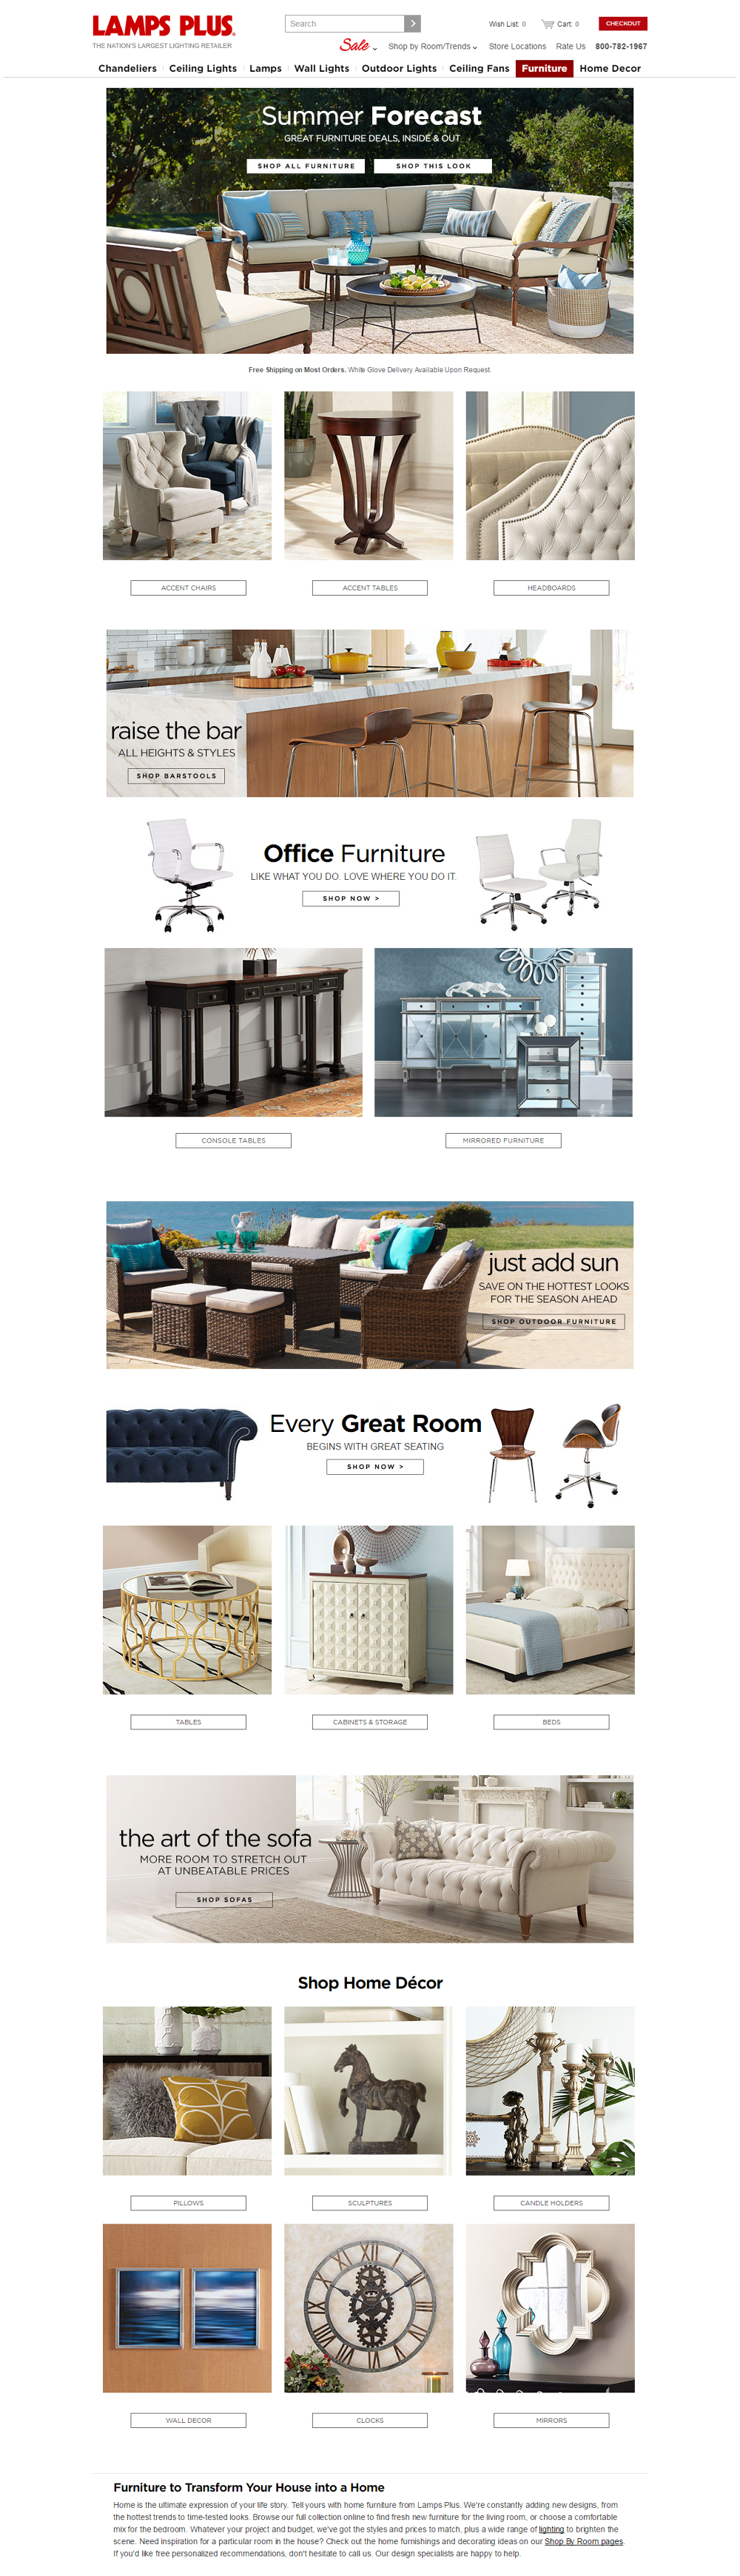 lamps plus landing pages brent turner copywriter los furnpage accent tables angeles tablet with usb port rectangular drop leaf dining table small glass and chrome coffee tile top